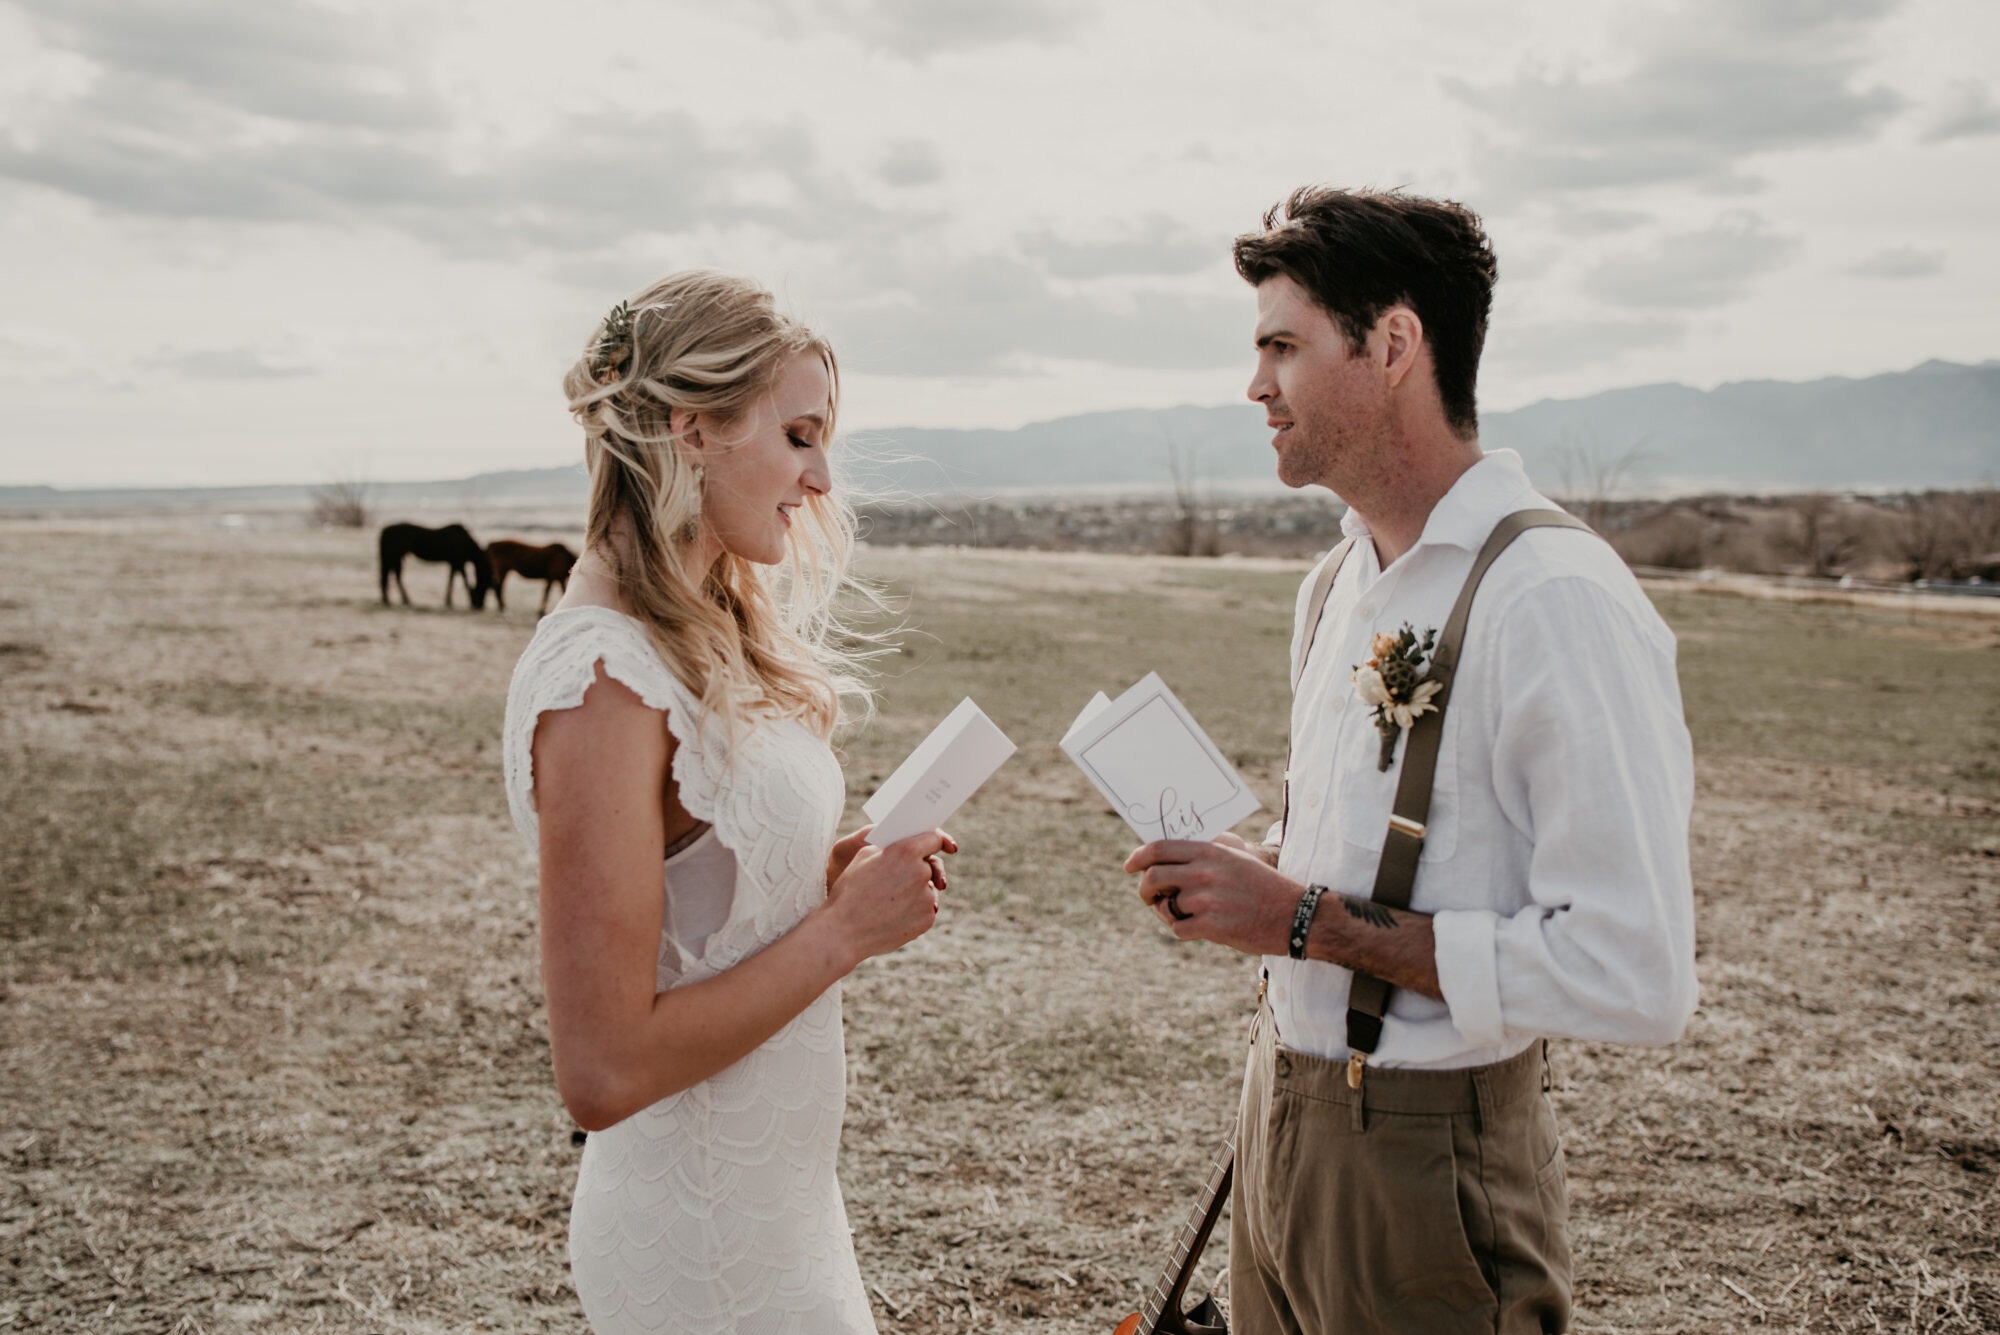 A couple ecxhanges vows while horses graze in the distance.